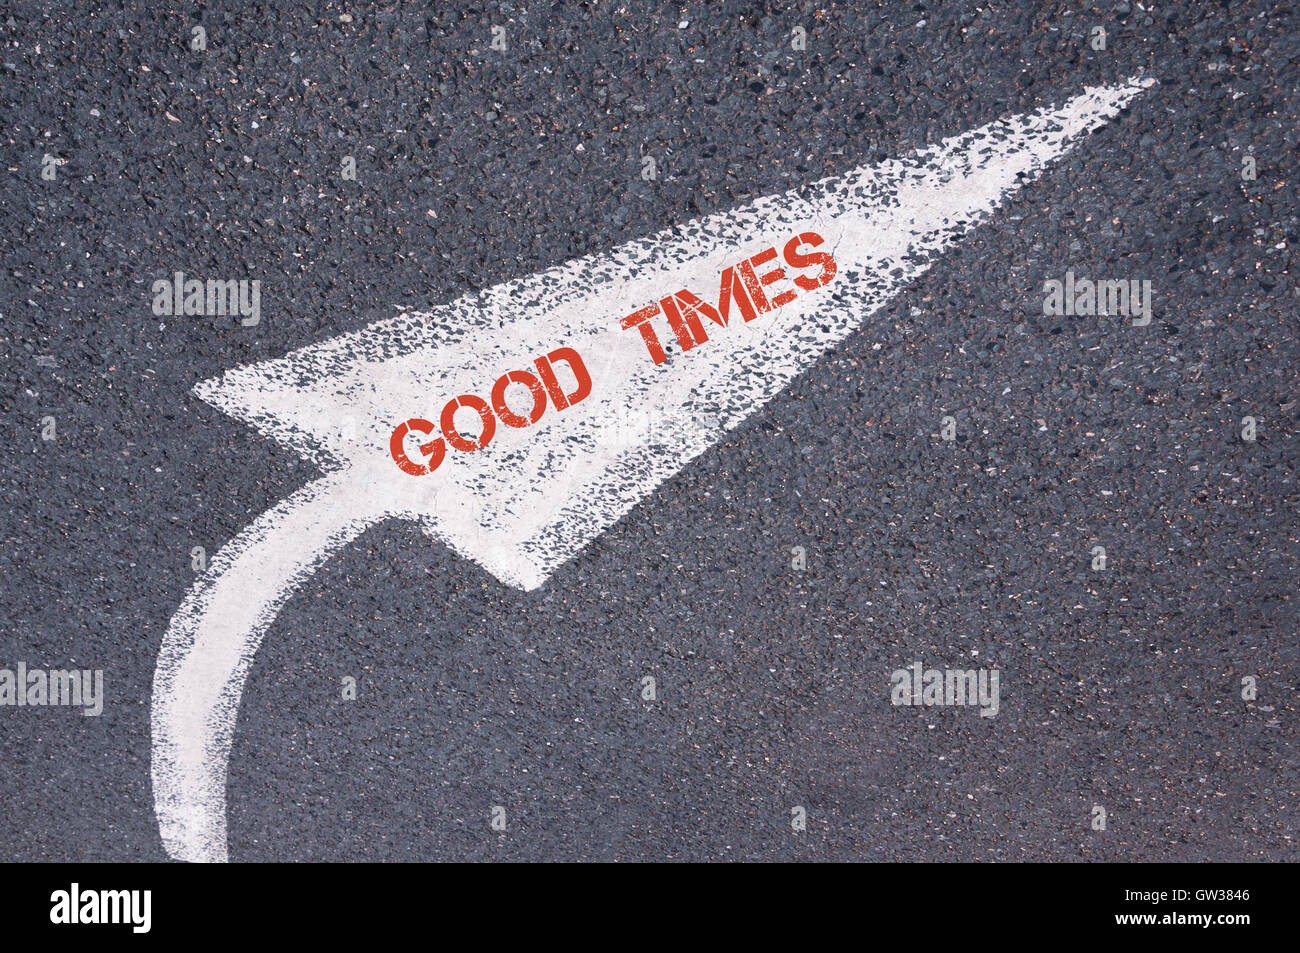 Directional white painted arrow with words GOOD TIMES over road surface, concept image - Stock Image